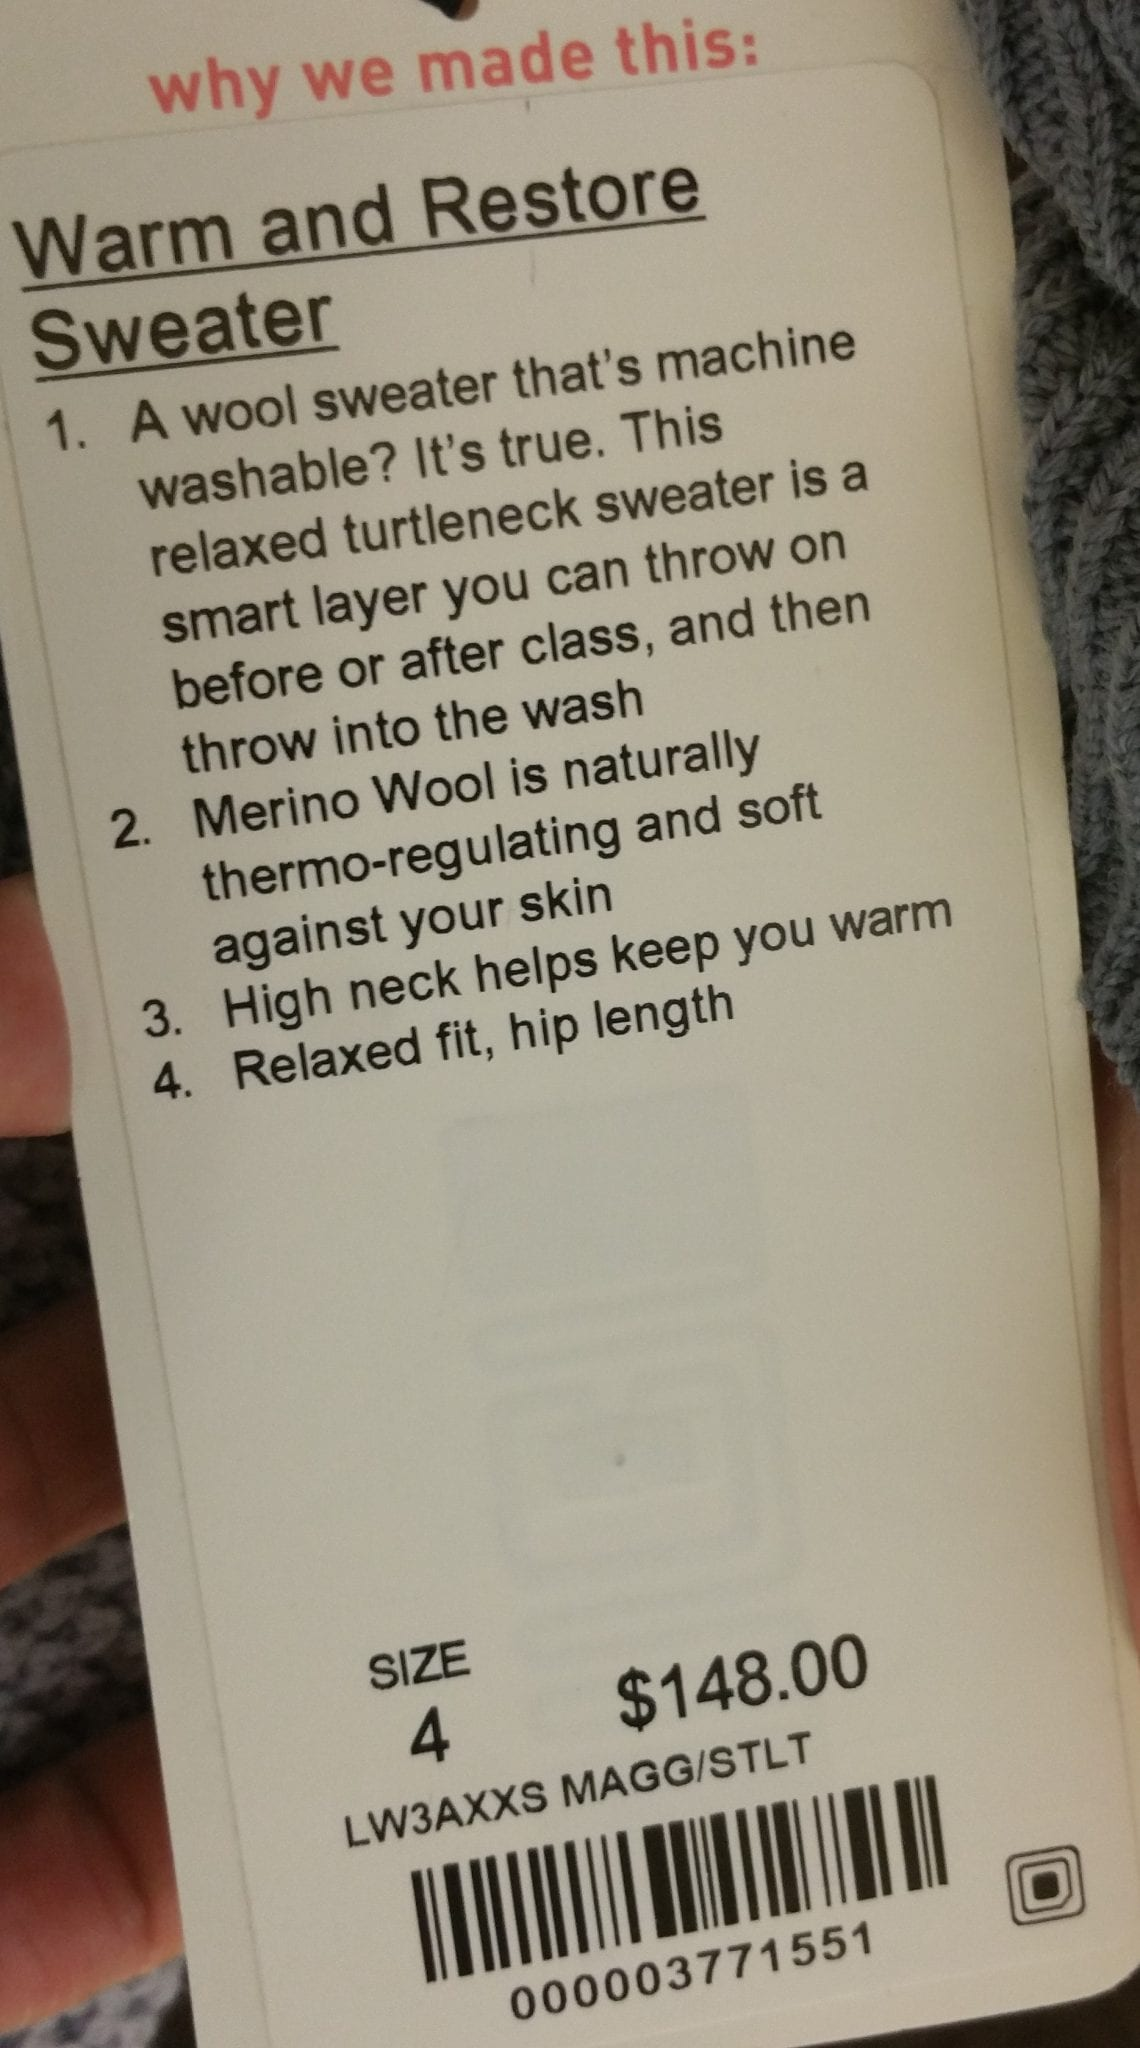 Warm and Restore Sweater